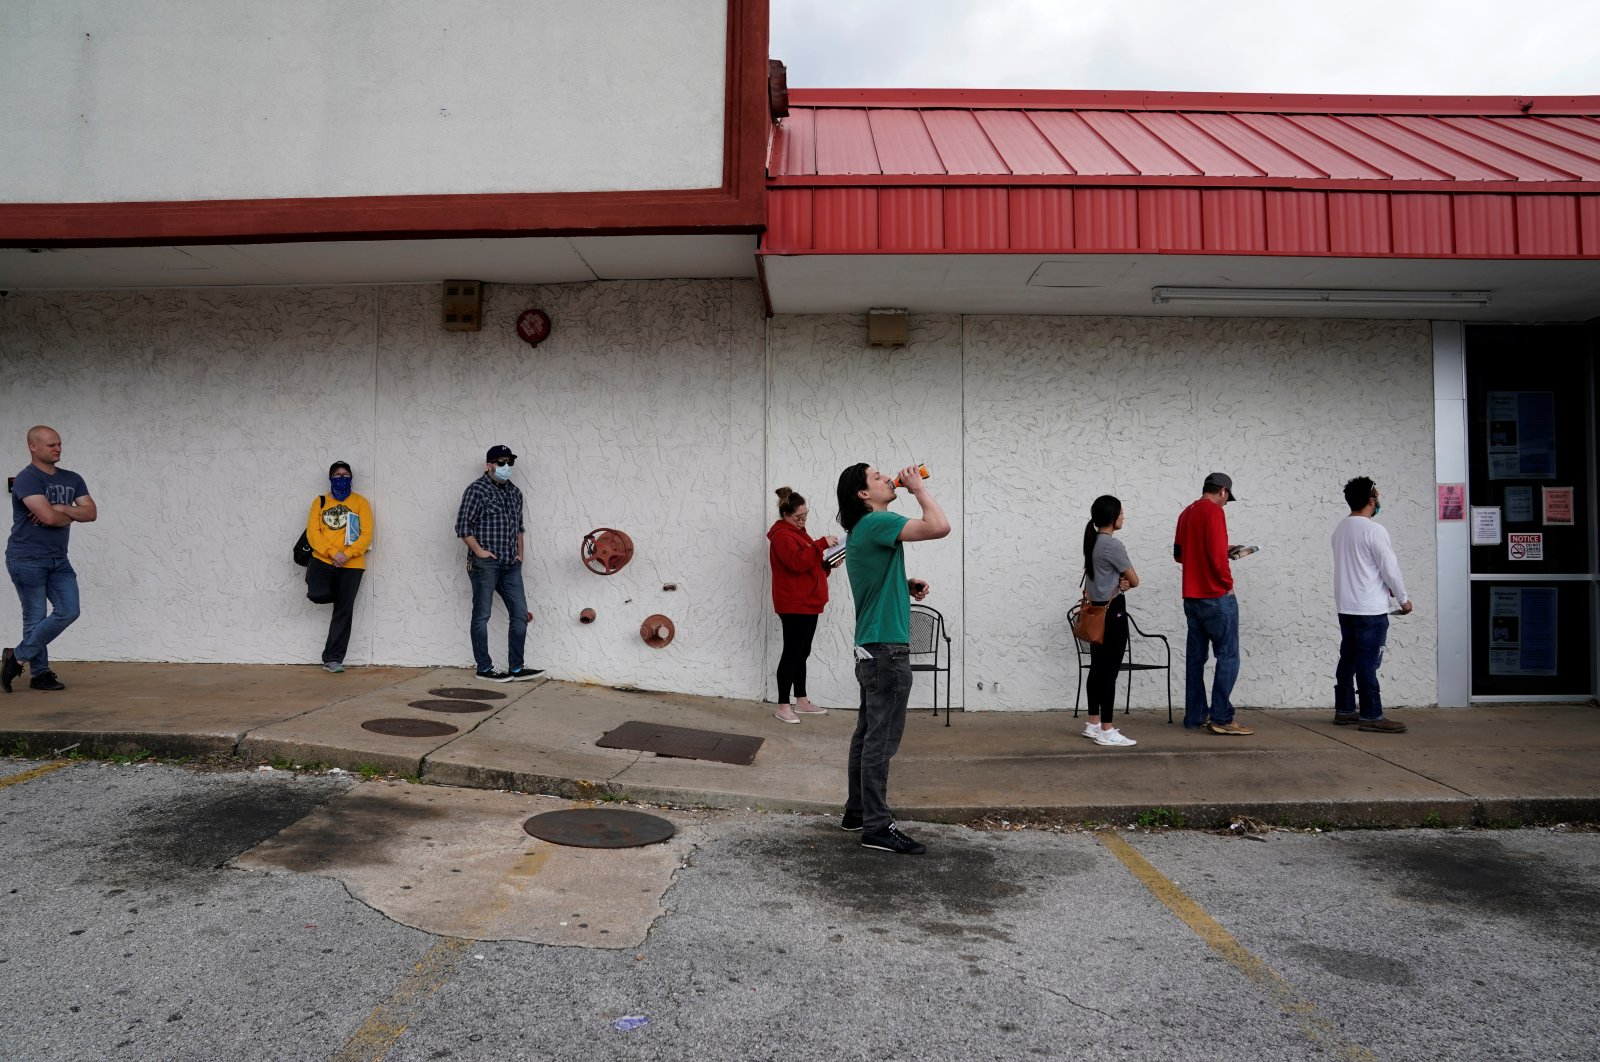 People who lost their jobs wait in line to file for unemployment following an outbreak of the coronavirus disease (COVID-19), at an Arkansas Workforce Center in Fayetteville, Arkansas, U.S., April 6, 2020. (Reuters Photo)